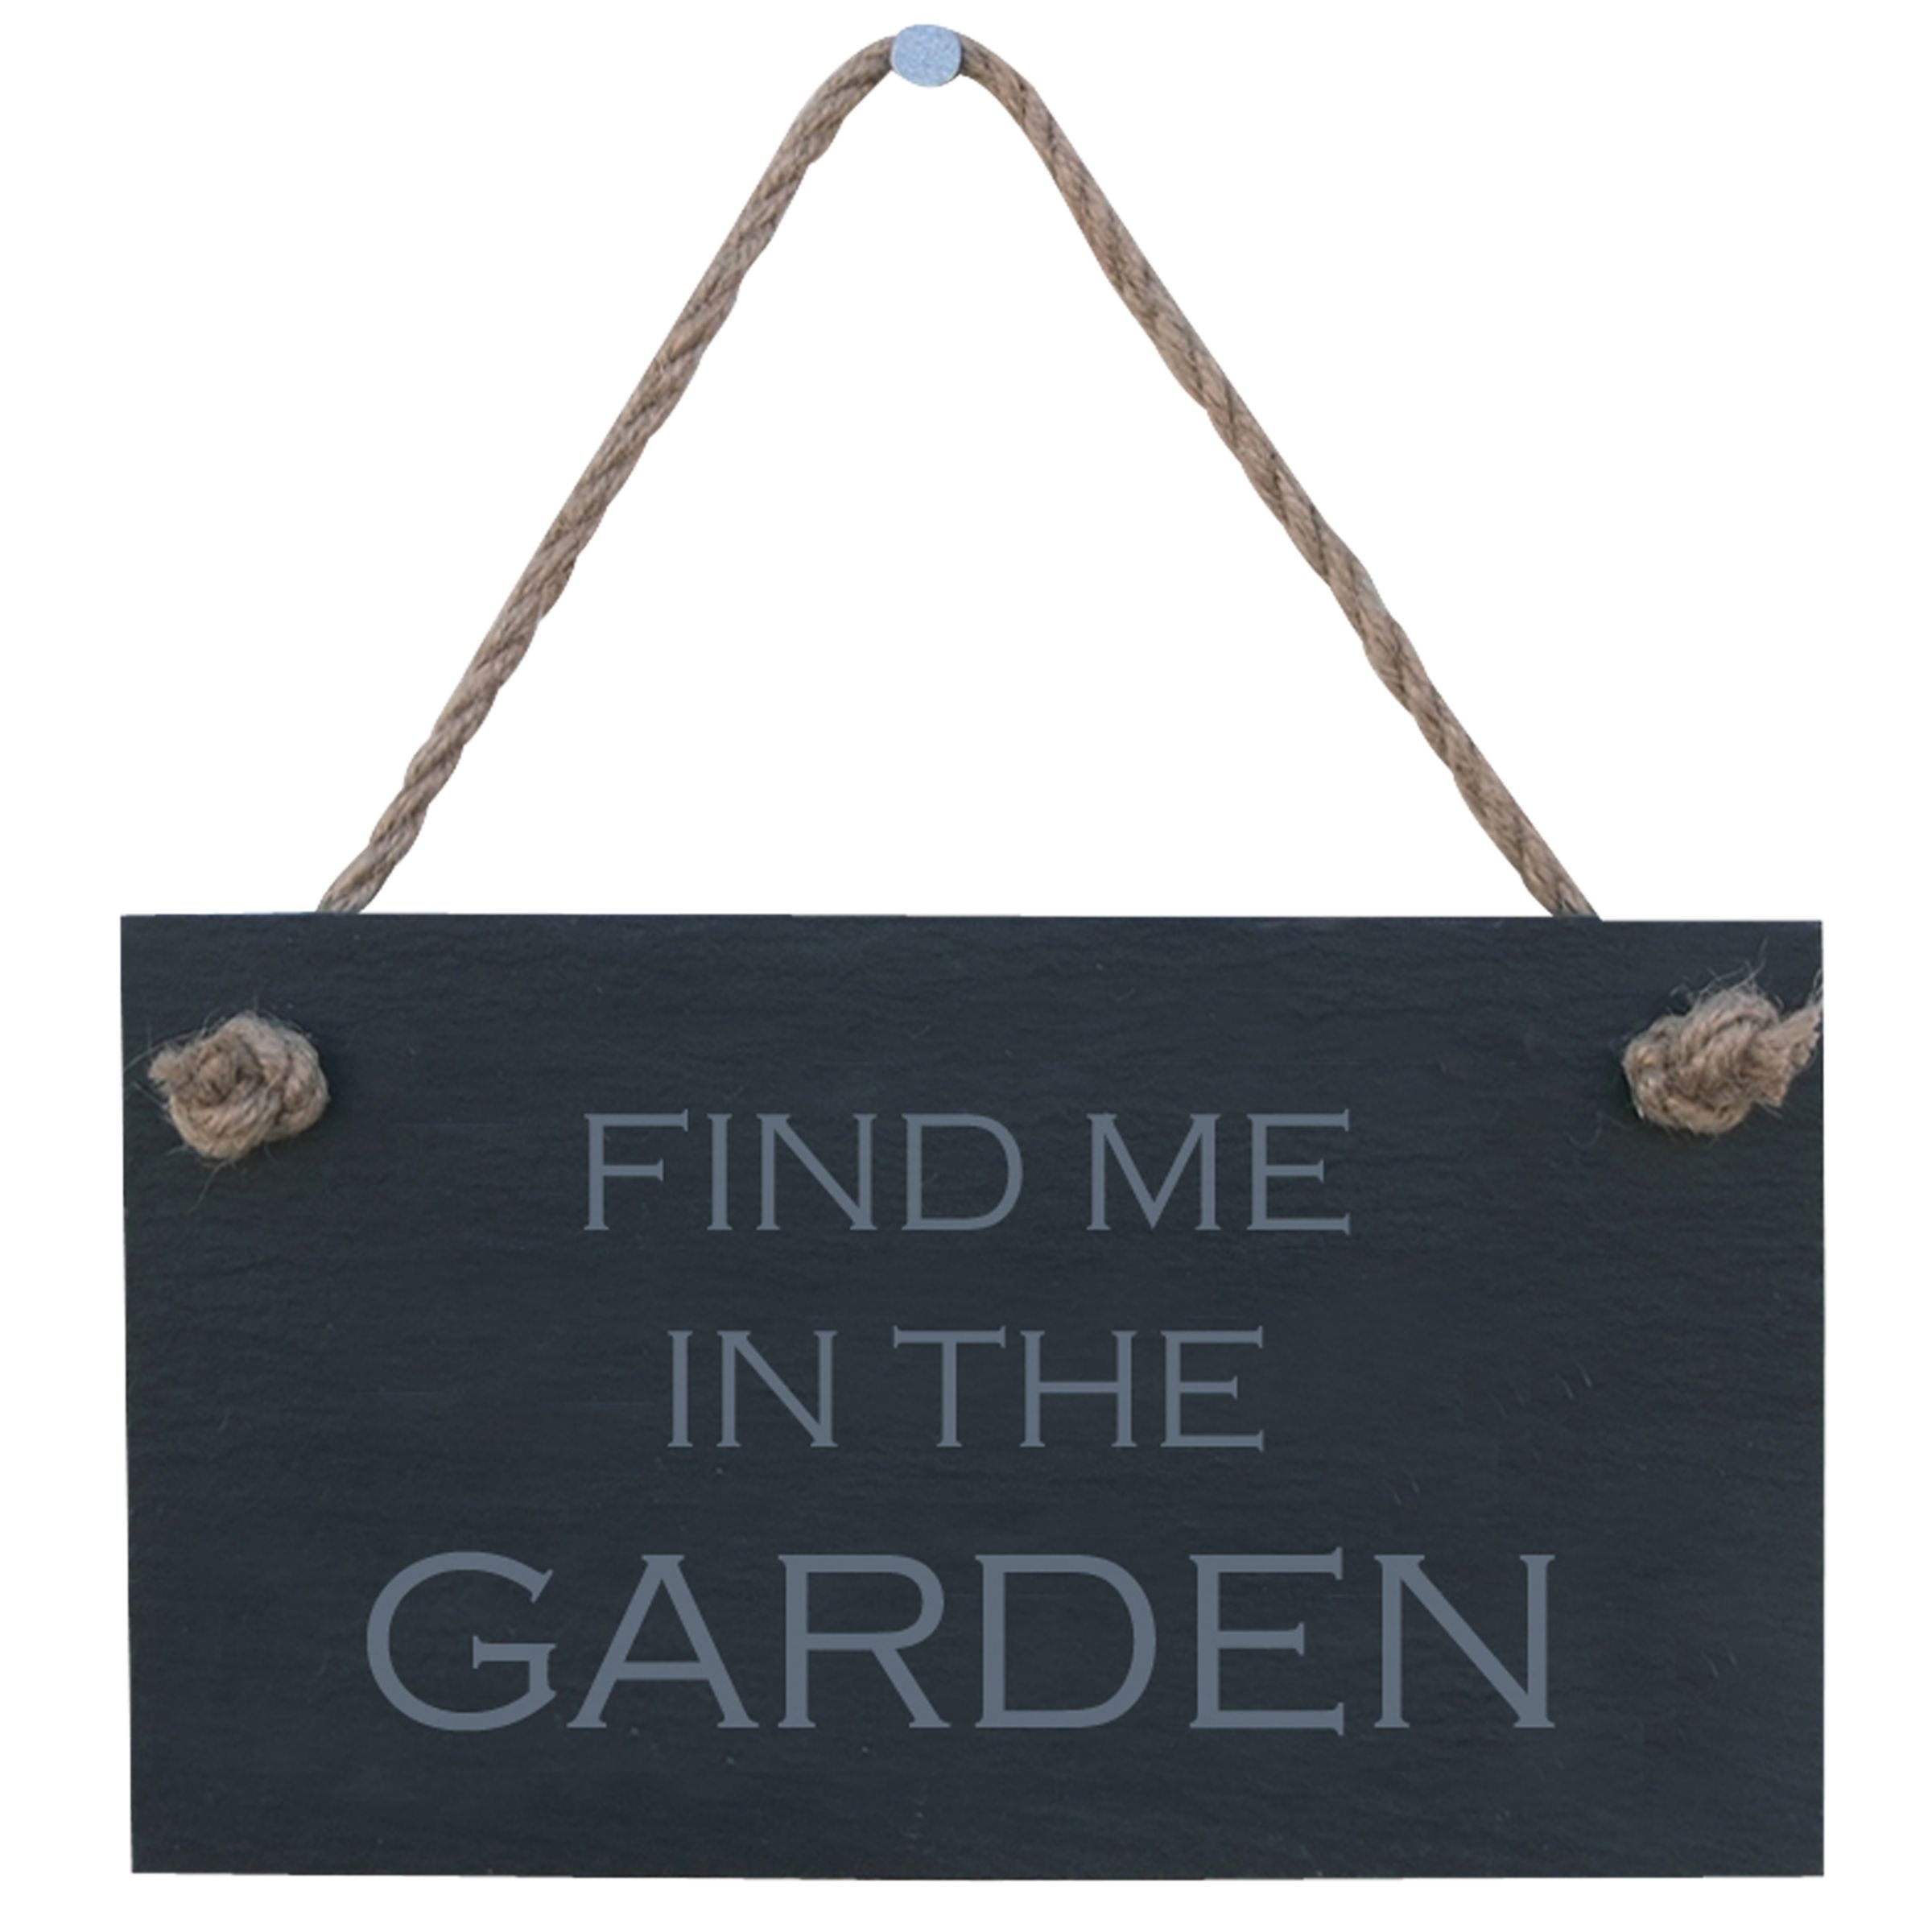 'find me in the garden' sign